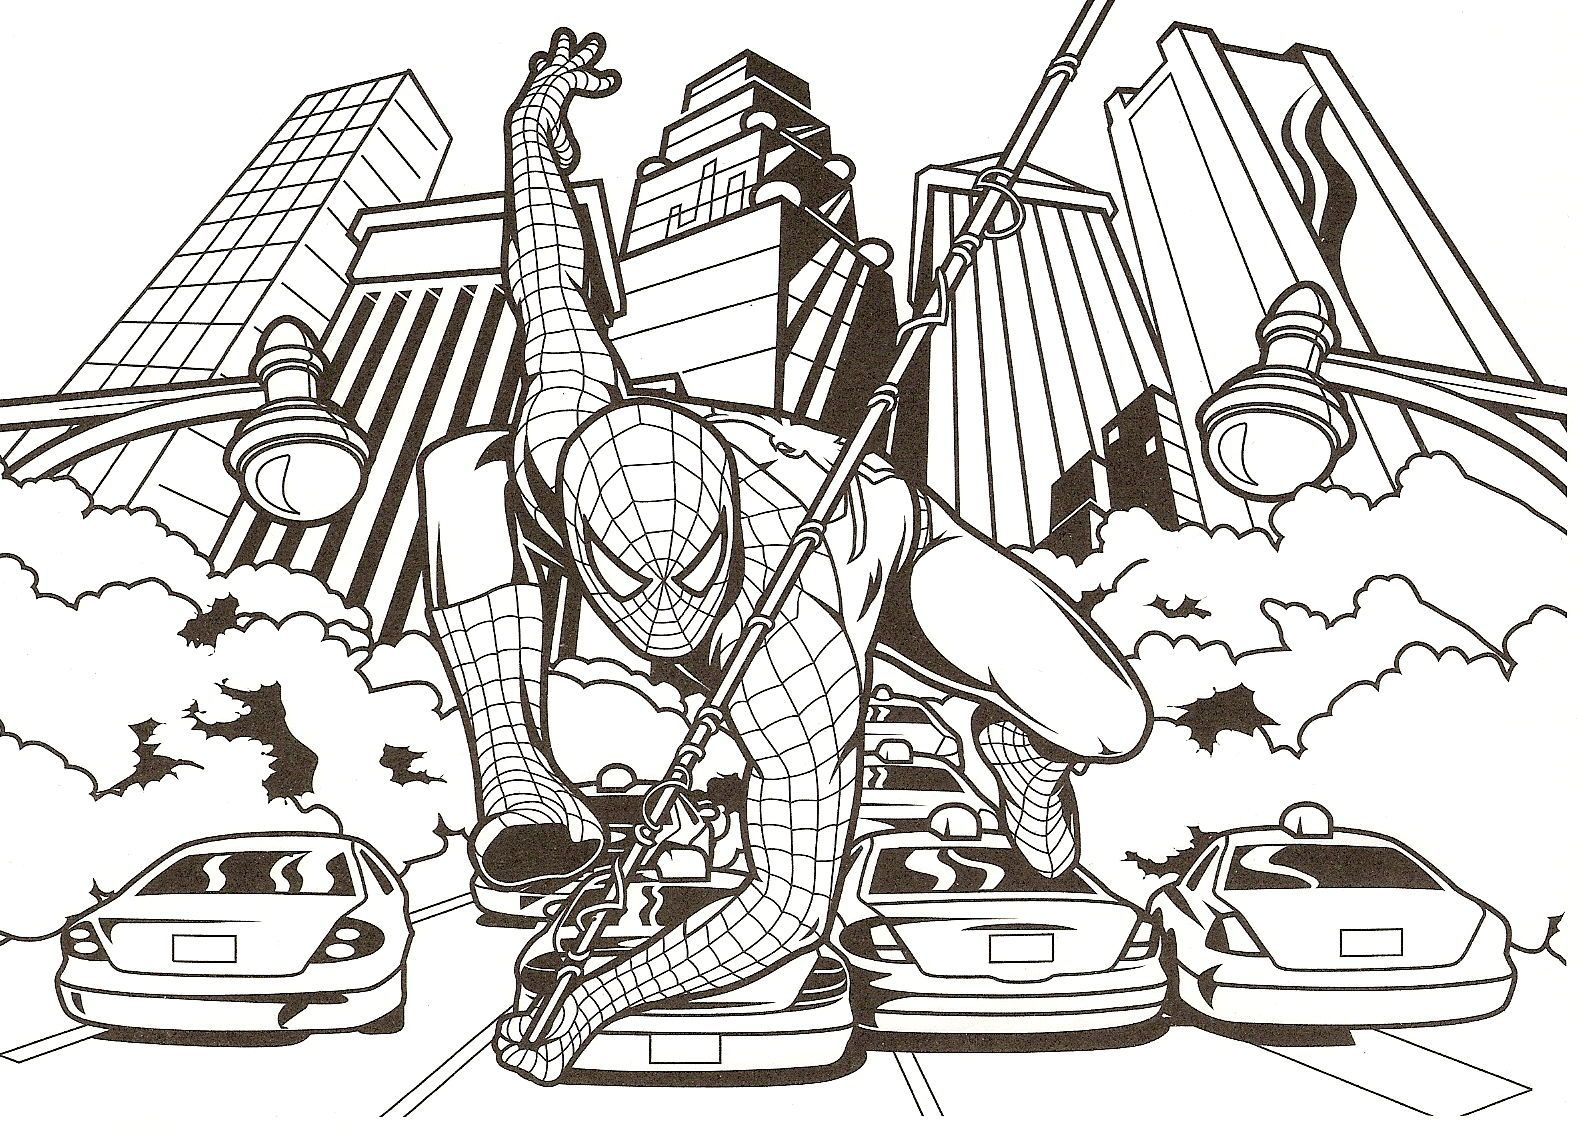 Green Goblin Coloring Pages Free - Coloring Home